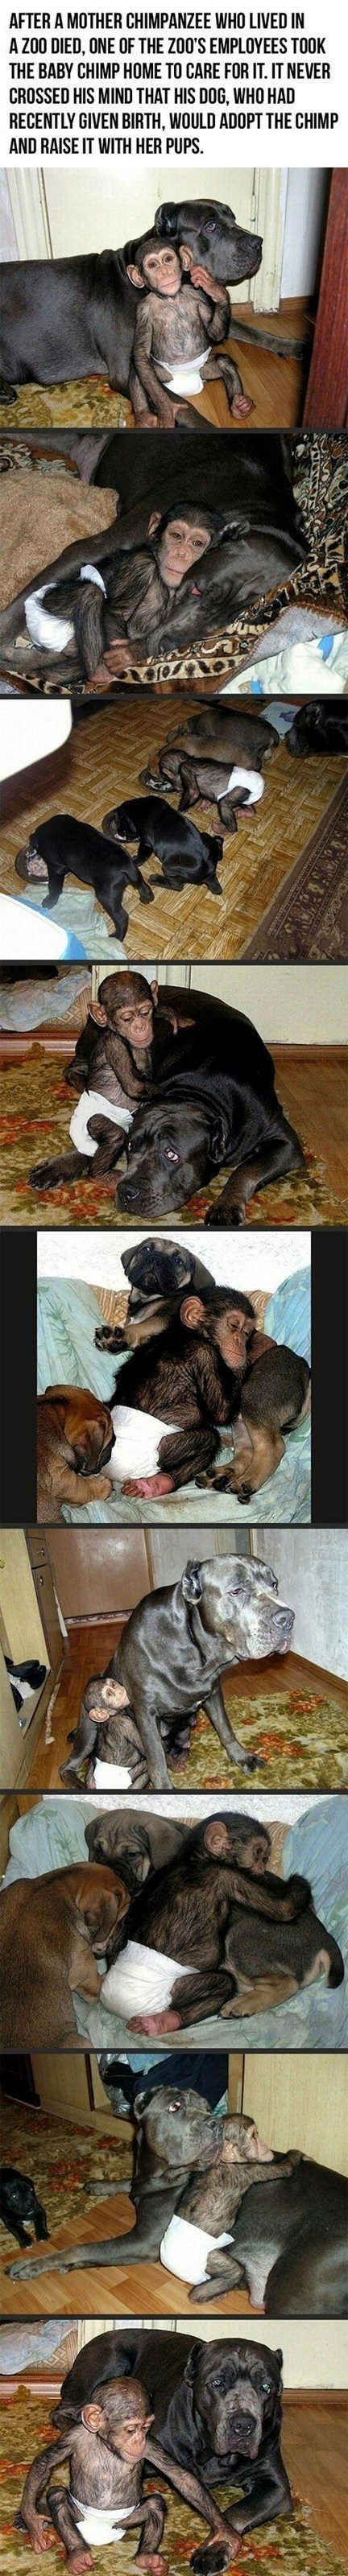 dogs,chimpanzee,adoption,mother,zoo,chimp,mom